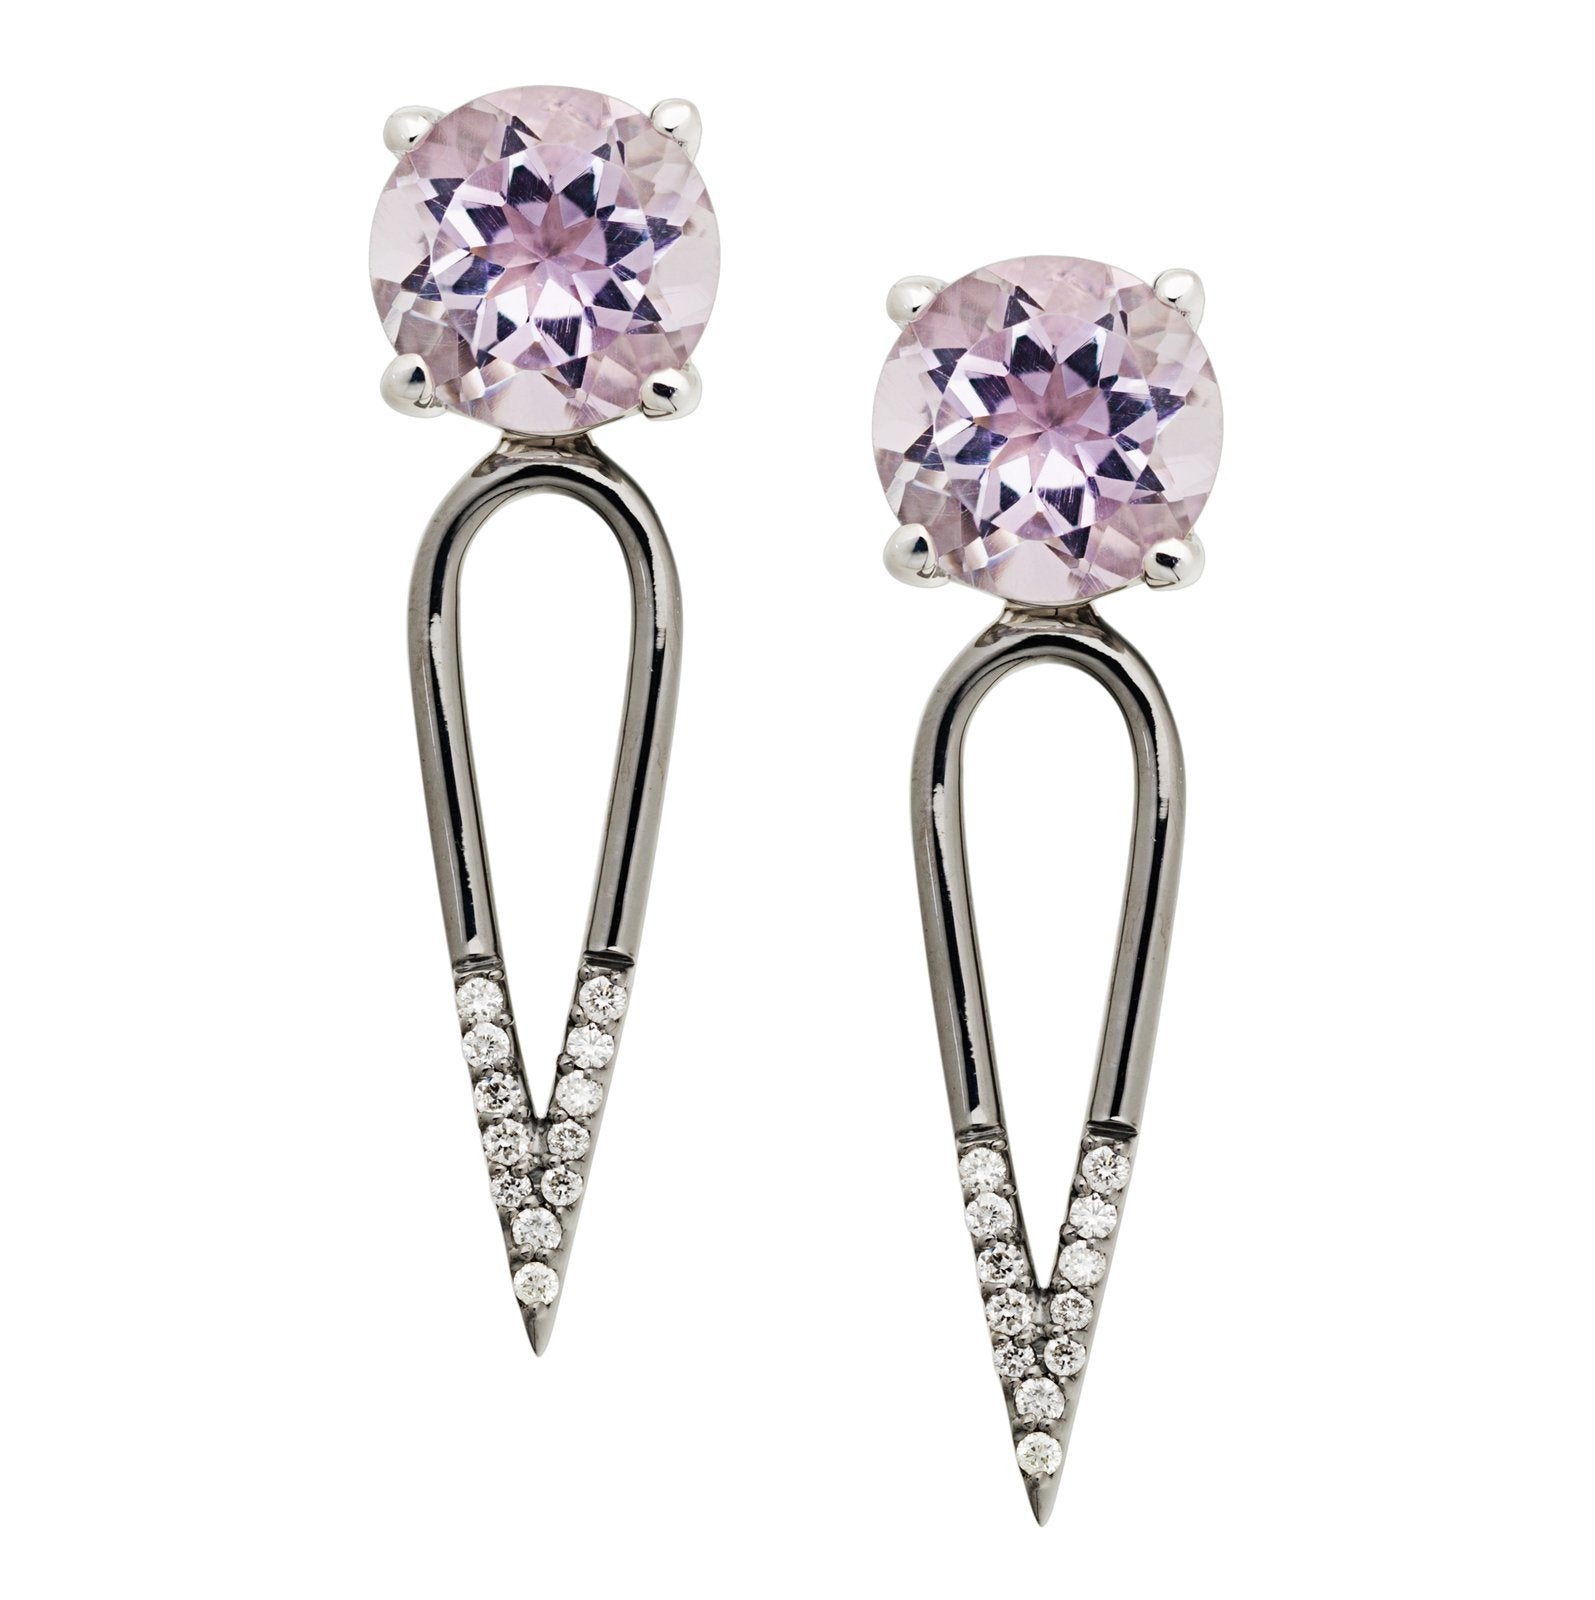 Irini Pink Amethyst gem stone diamond dipped dagger, sterling silver earrings are edgy yet elegant and the perfect gift, made in nyc